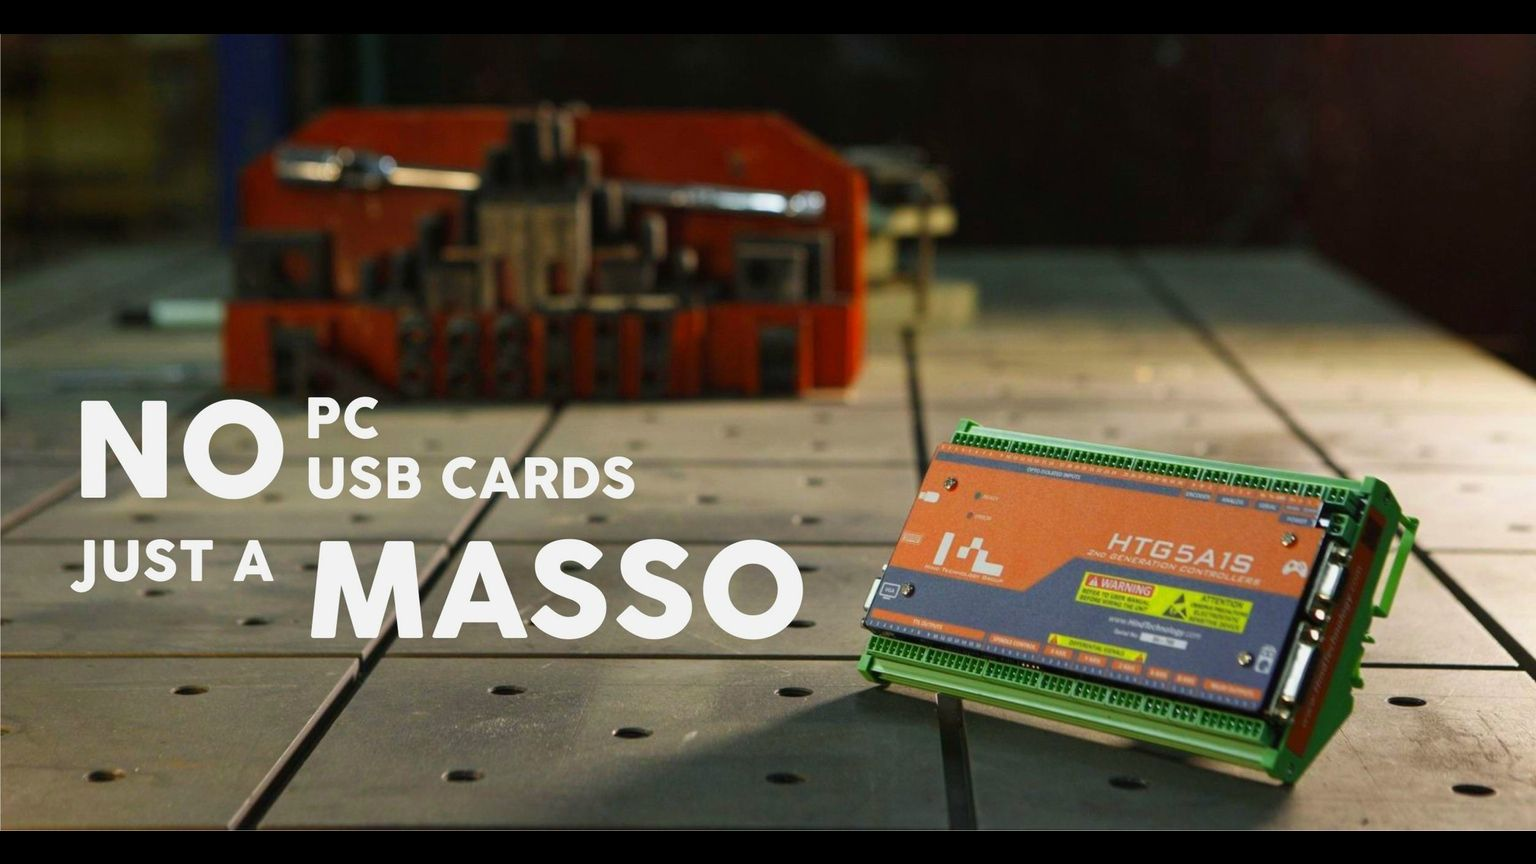 MASSO, The All-In-One CNC Controller that doesn't need a PC